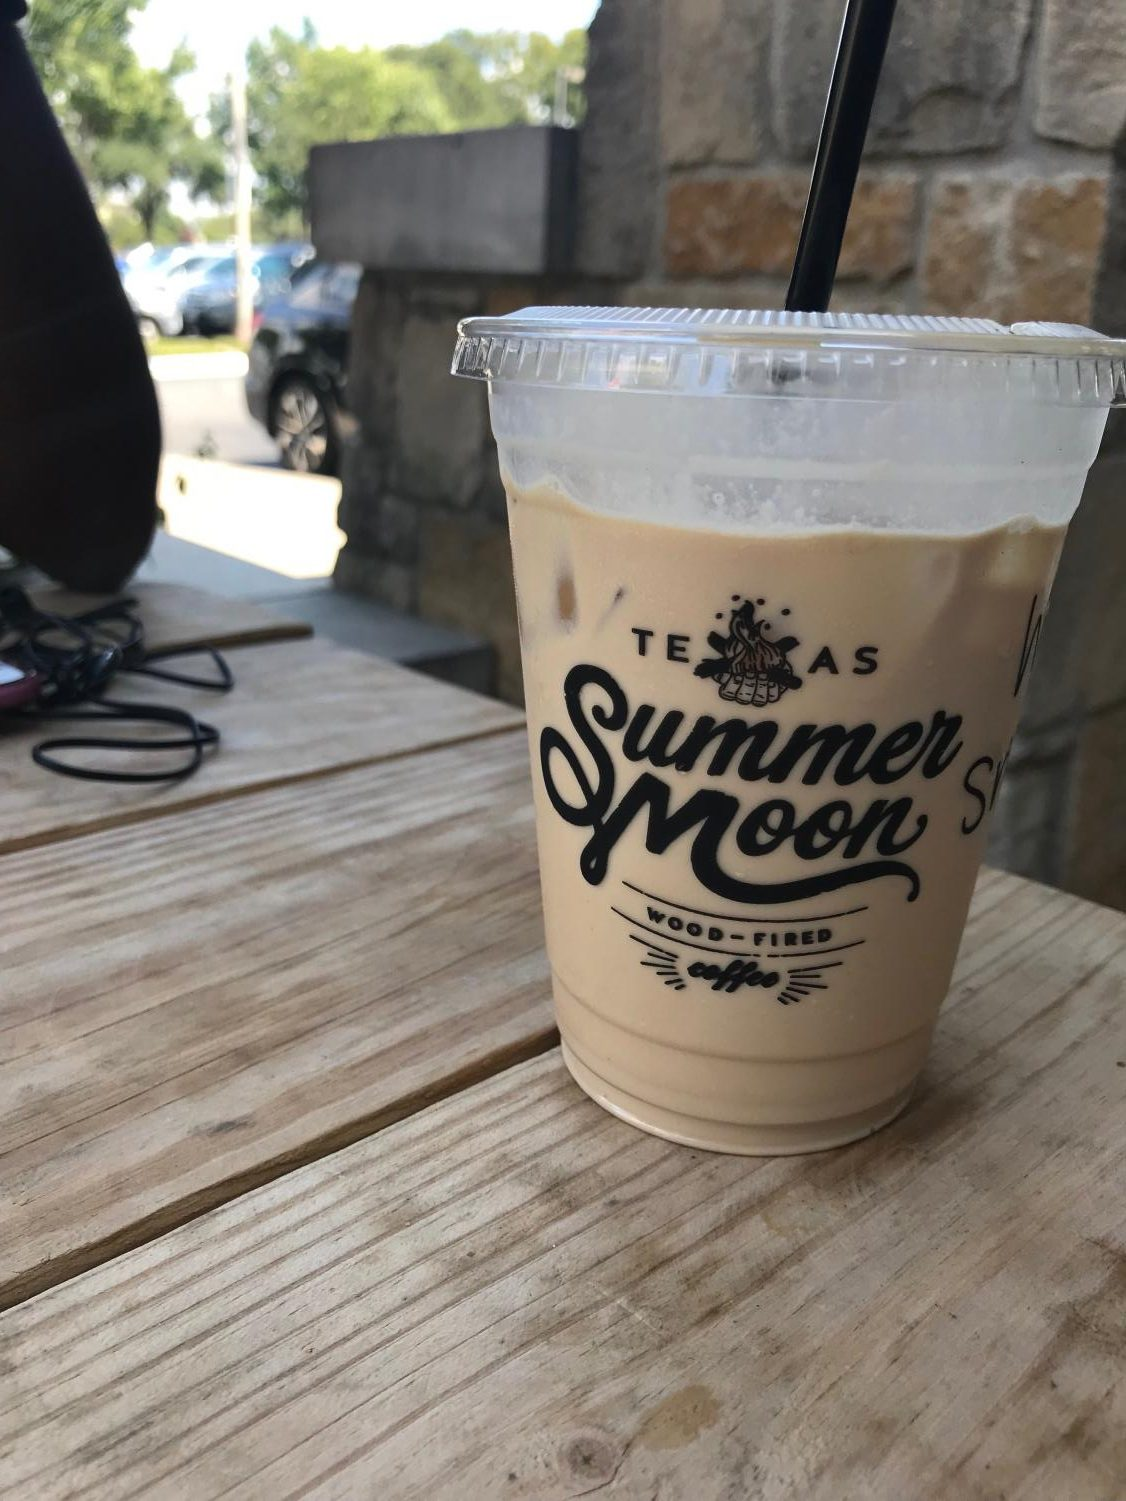 The+Wintermoon+Coffee%2C+with+Moon+Milk%2C+was+in+a+cup+that+featured+Summer+Moon%27s+signature+logo.